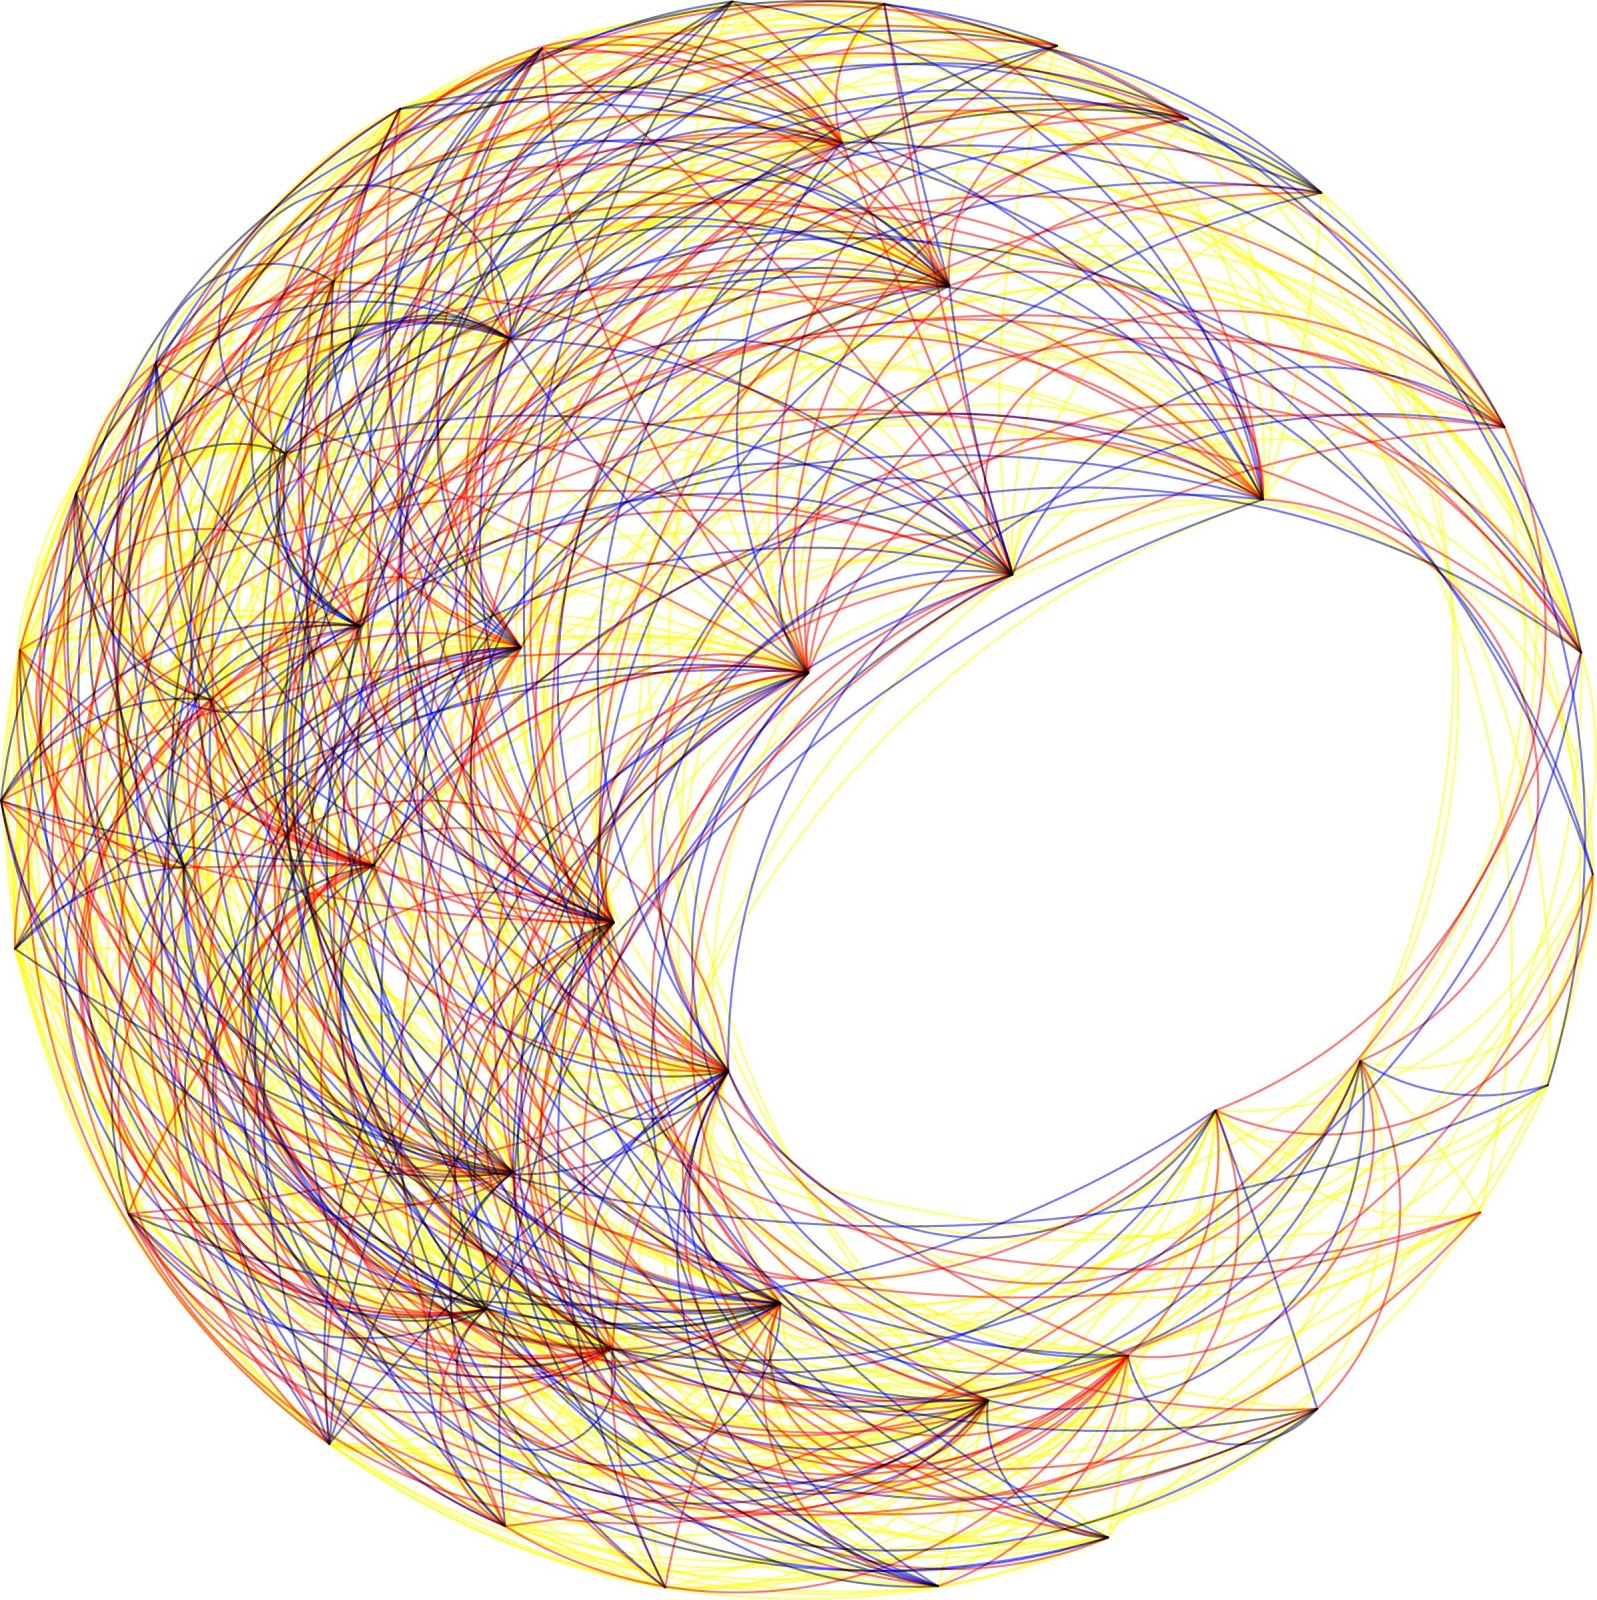 A dense, interconnected web of colored lines in blue, red, yellow, and black, converging in points throughout a moon shape with closed points